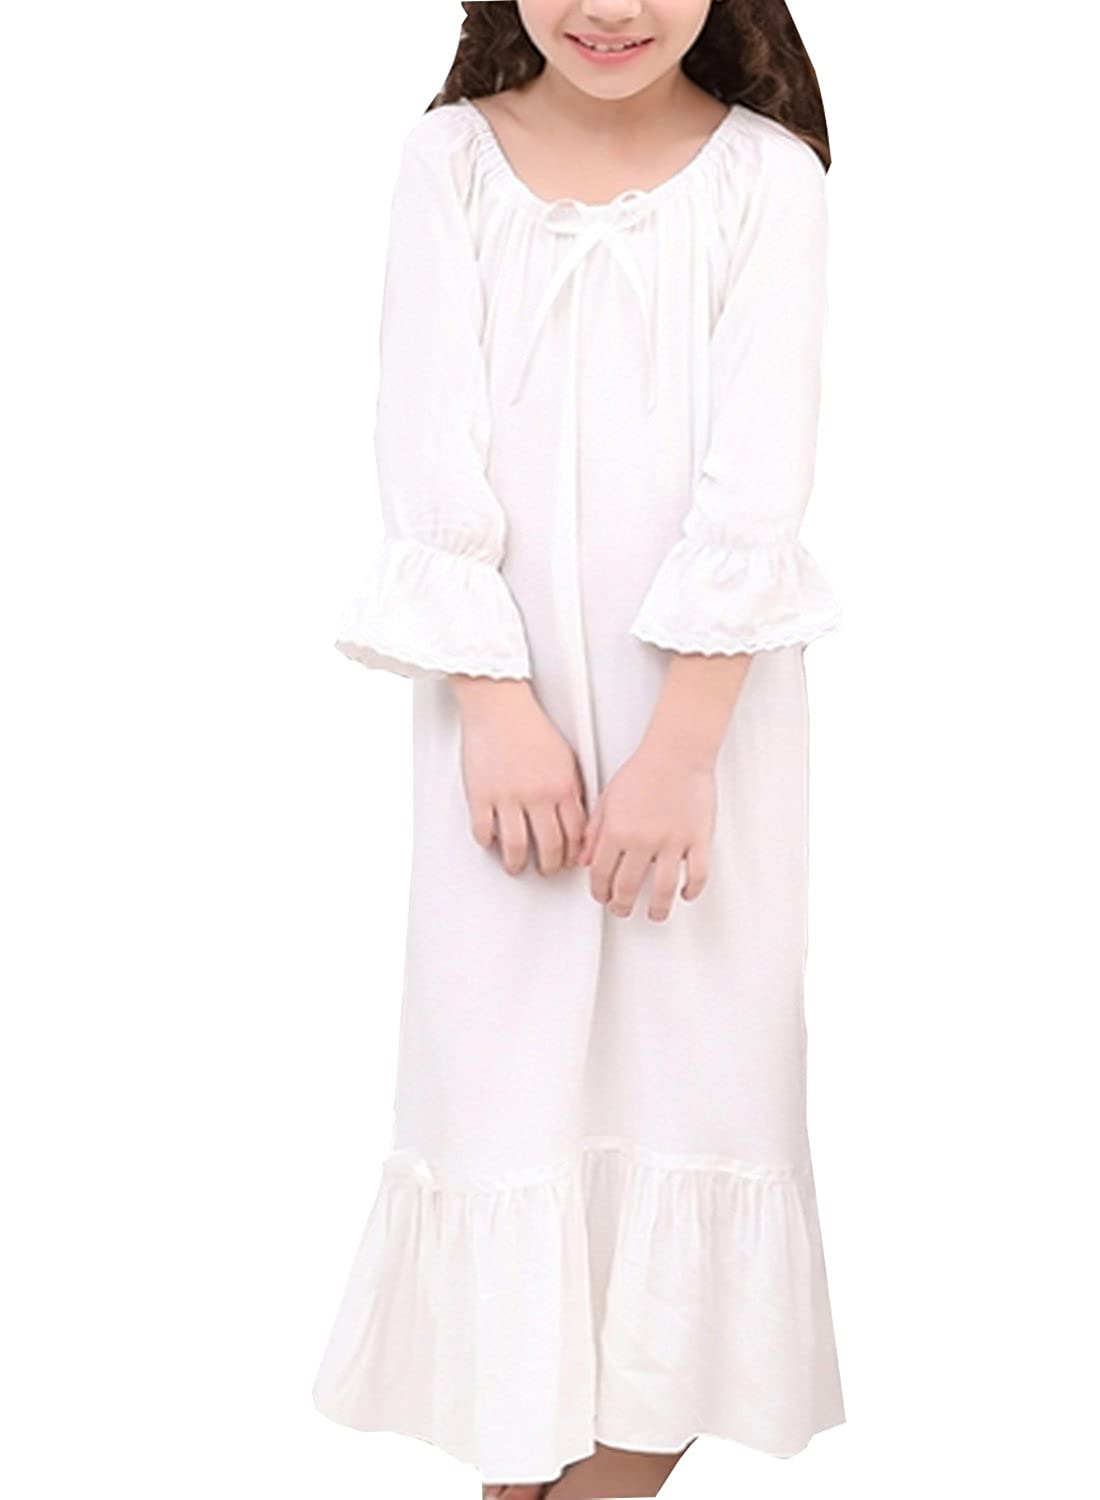 BAIYIXIN Little Girls Long Sleeve White Nightgown Robe Sleepwear Dress(3y-10y)